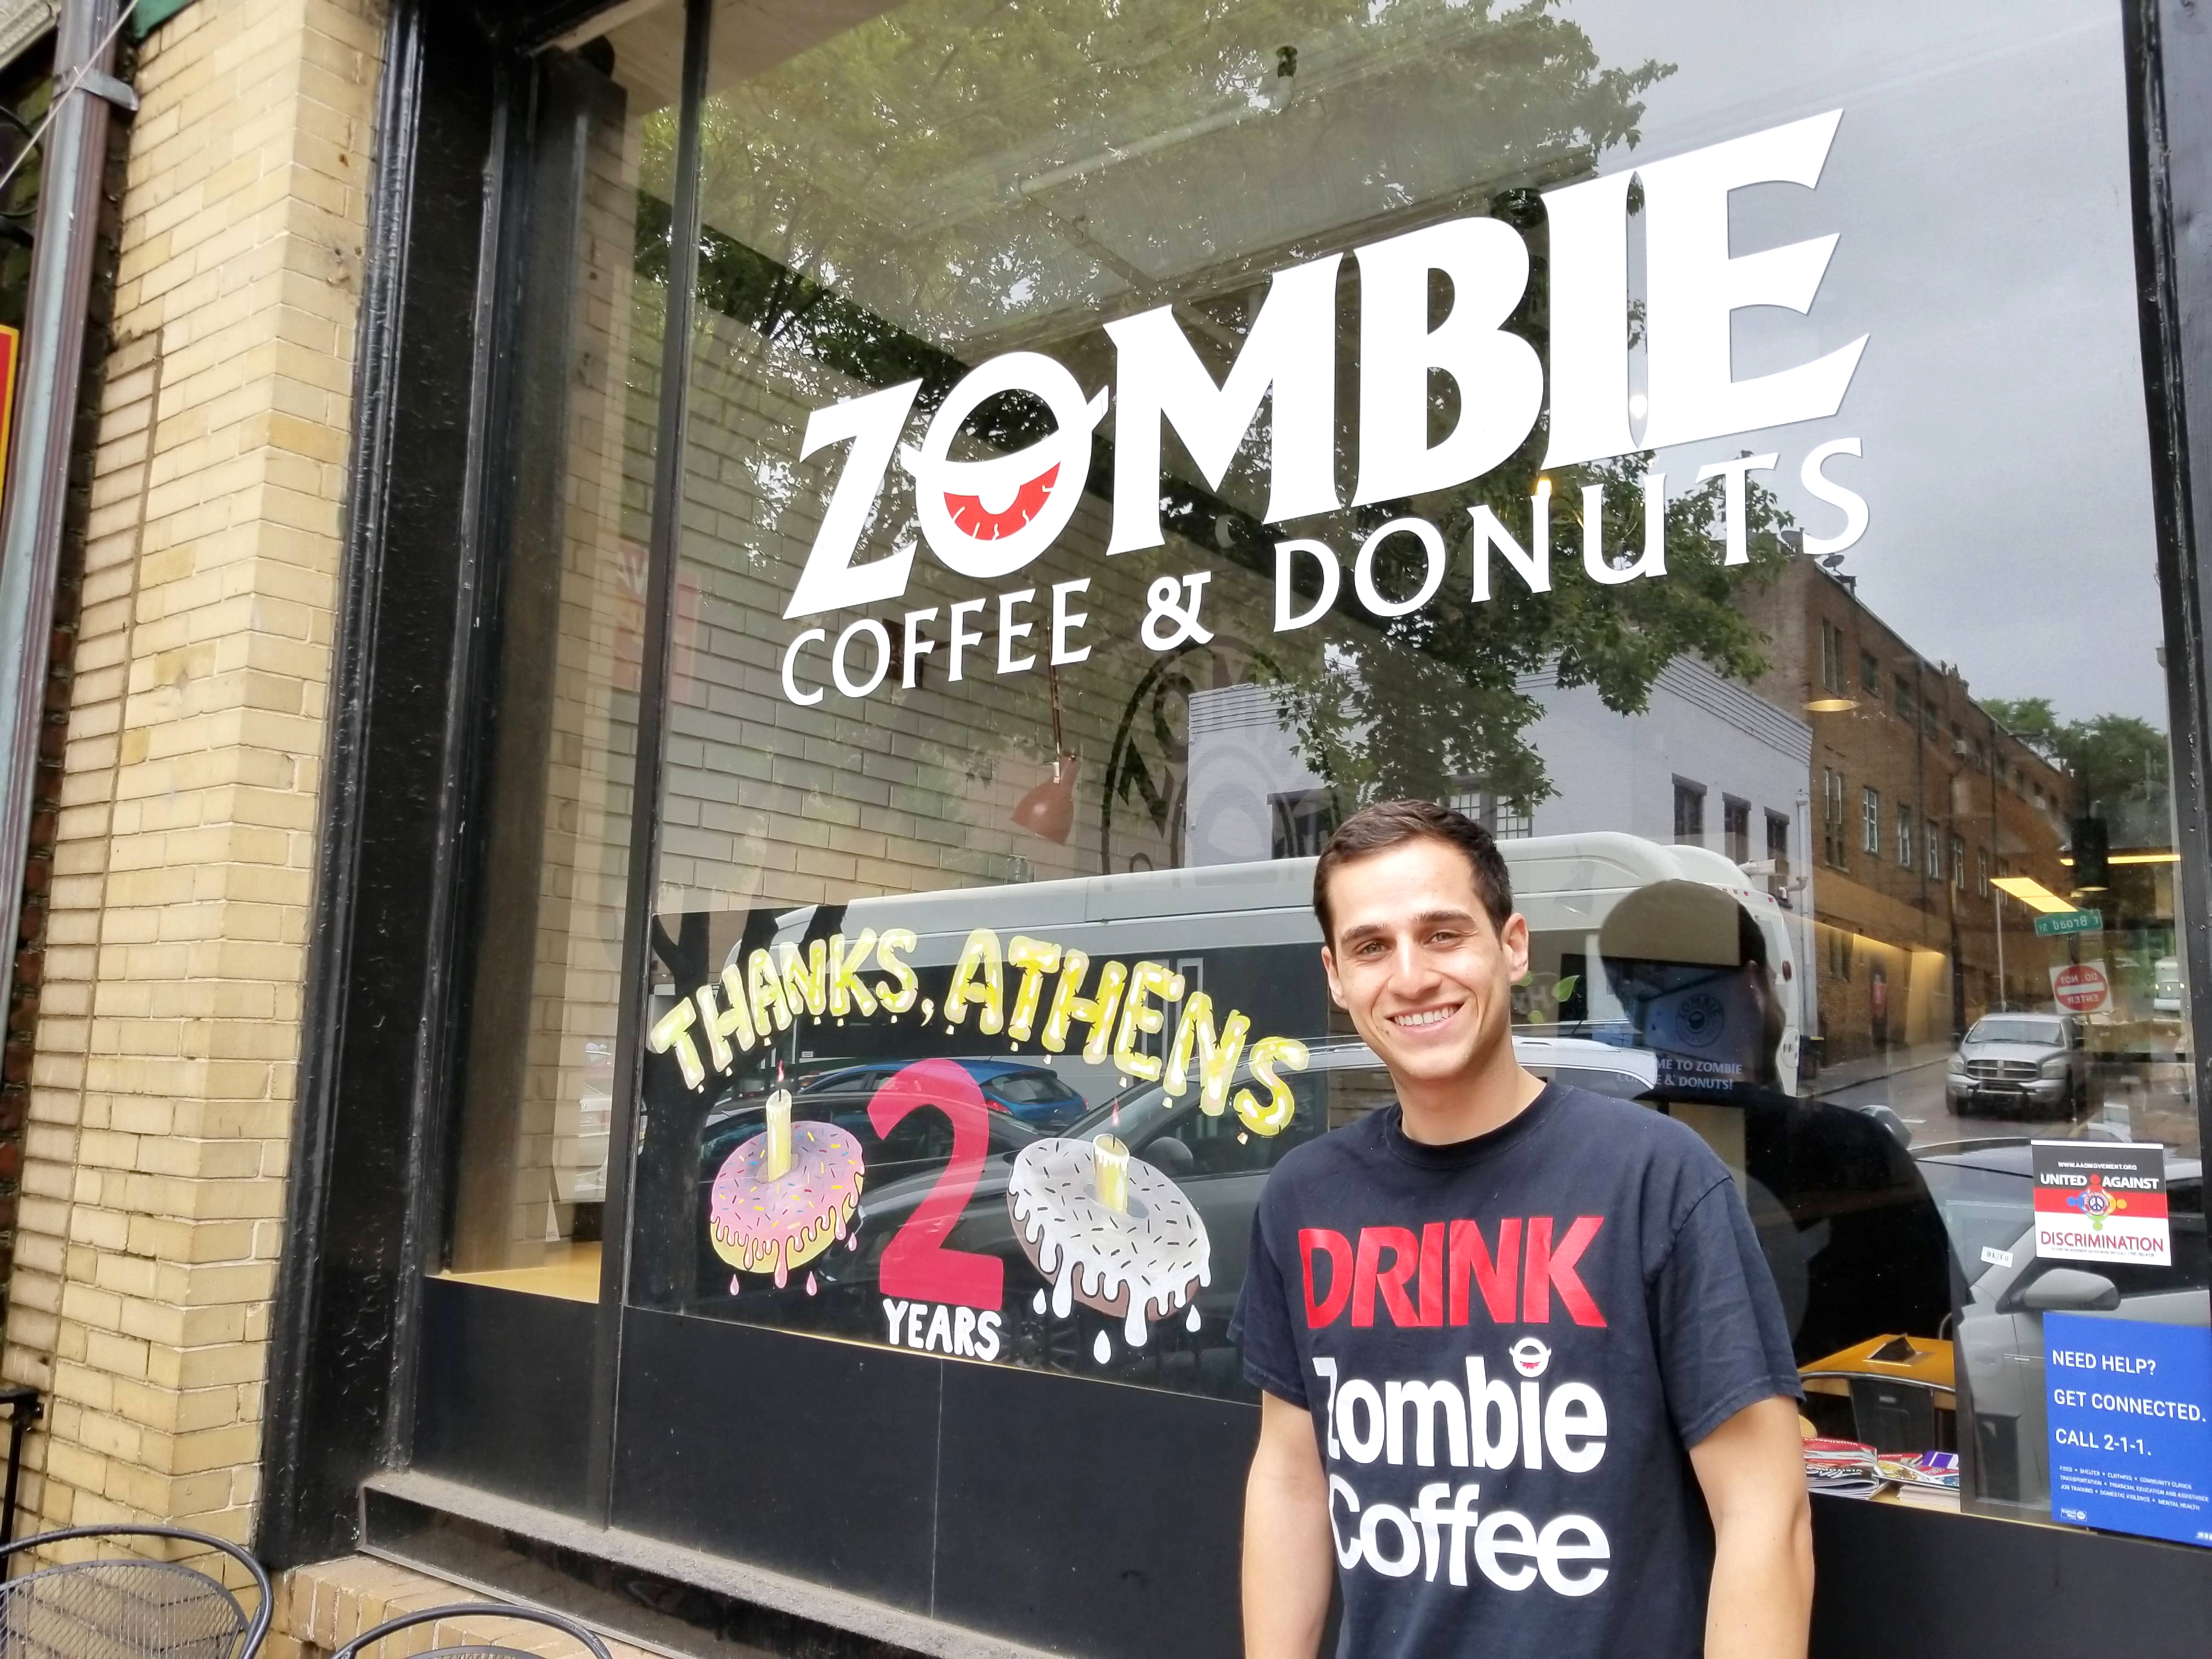 ca0e14d6cd8 UGA alum runs a doughnut business that gives back - UGA Today